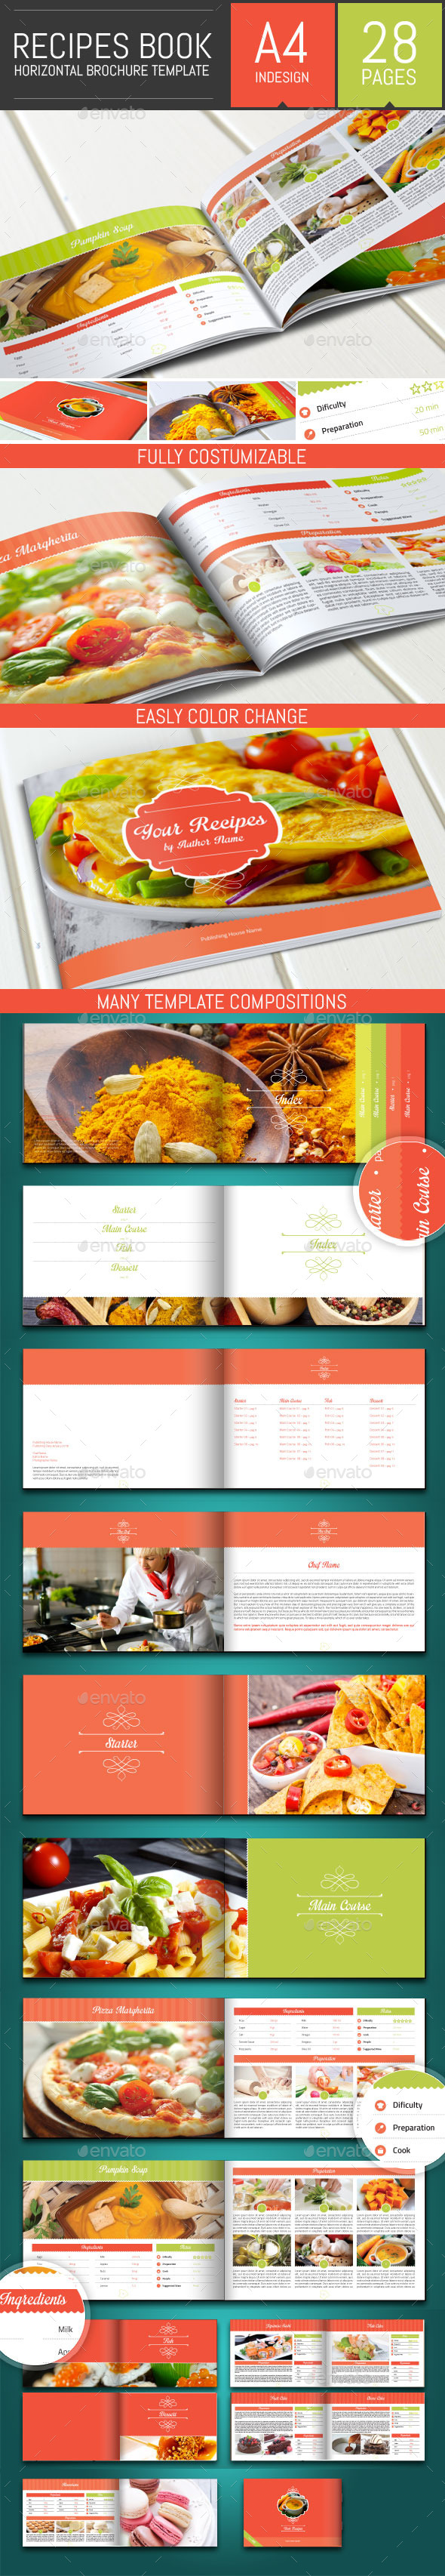 Recipes Book - Horizontal Brochure Template - Informational Brochures